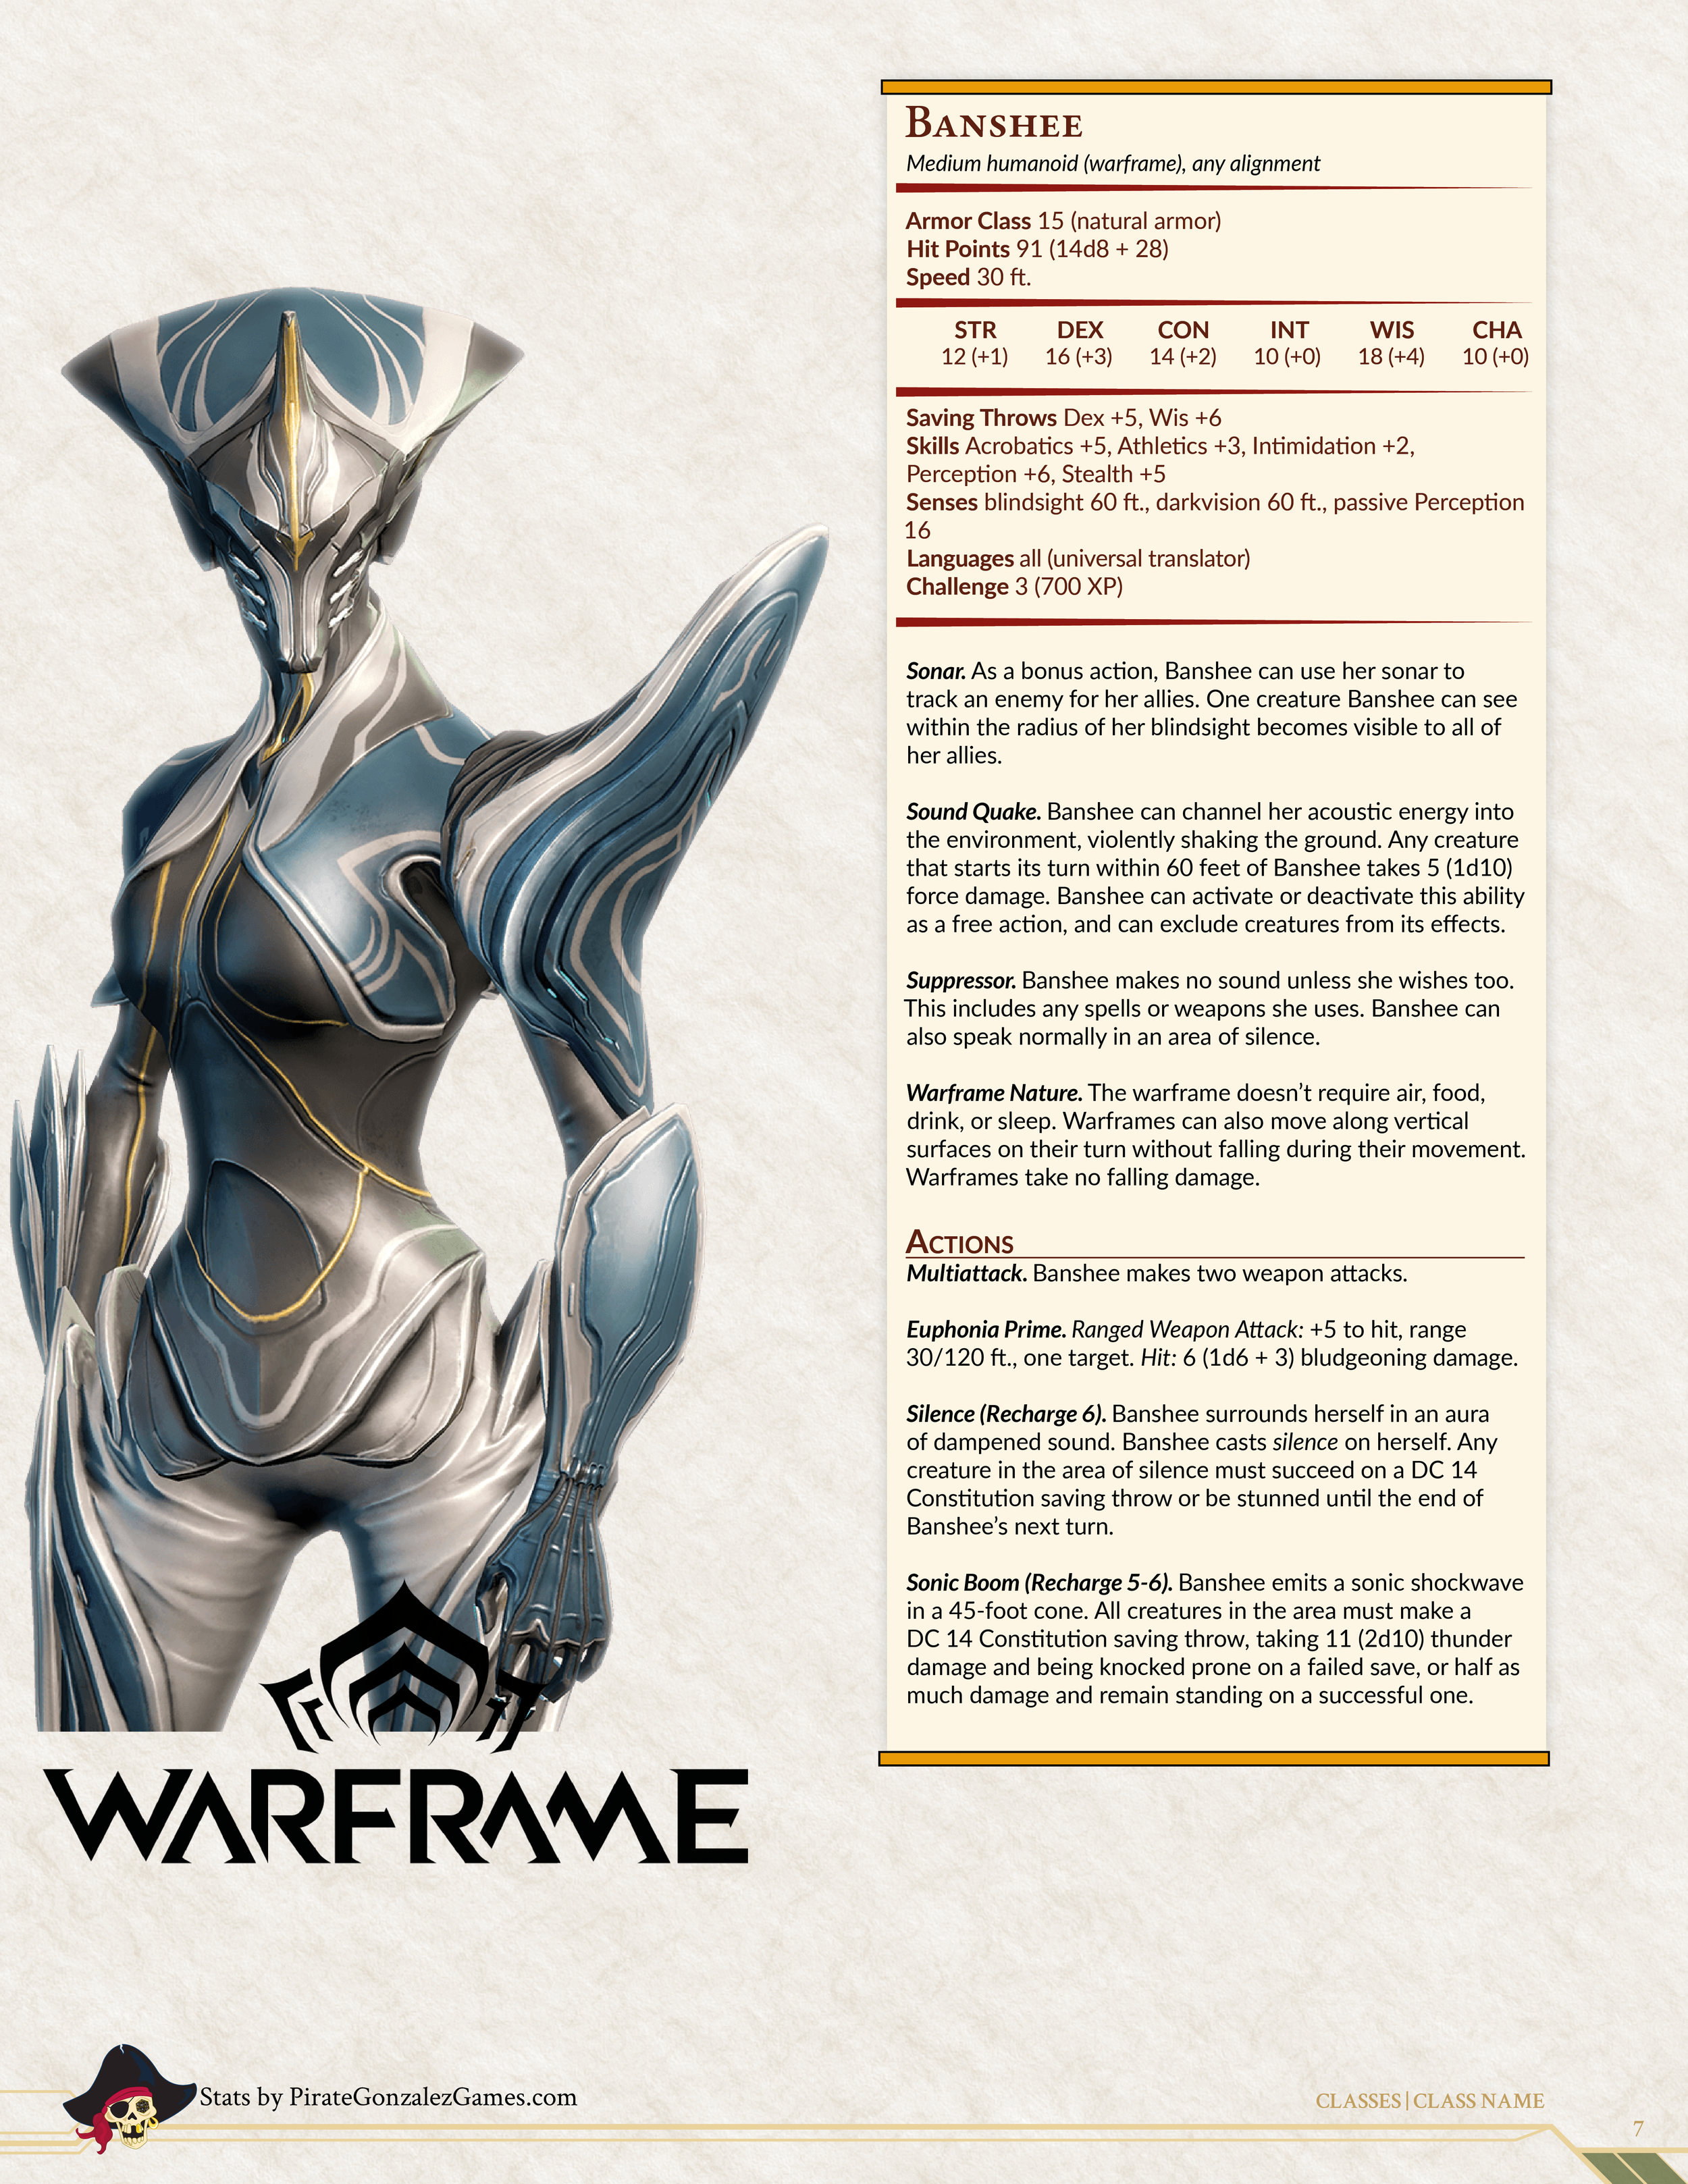 Warframe 5e Update — Pirate Gonzalez Games